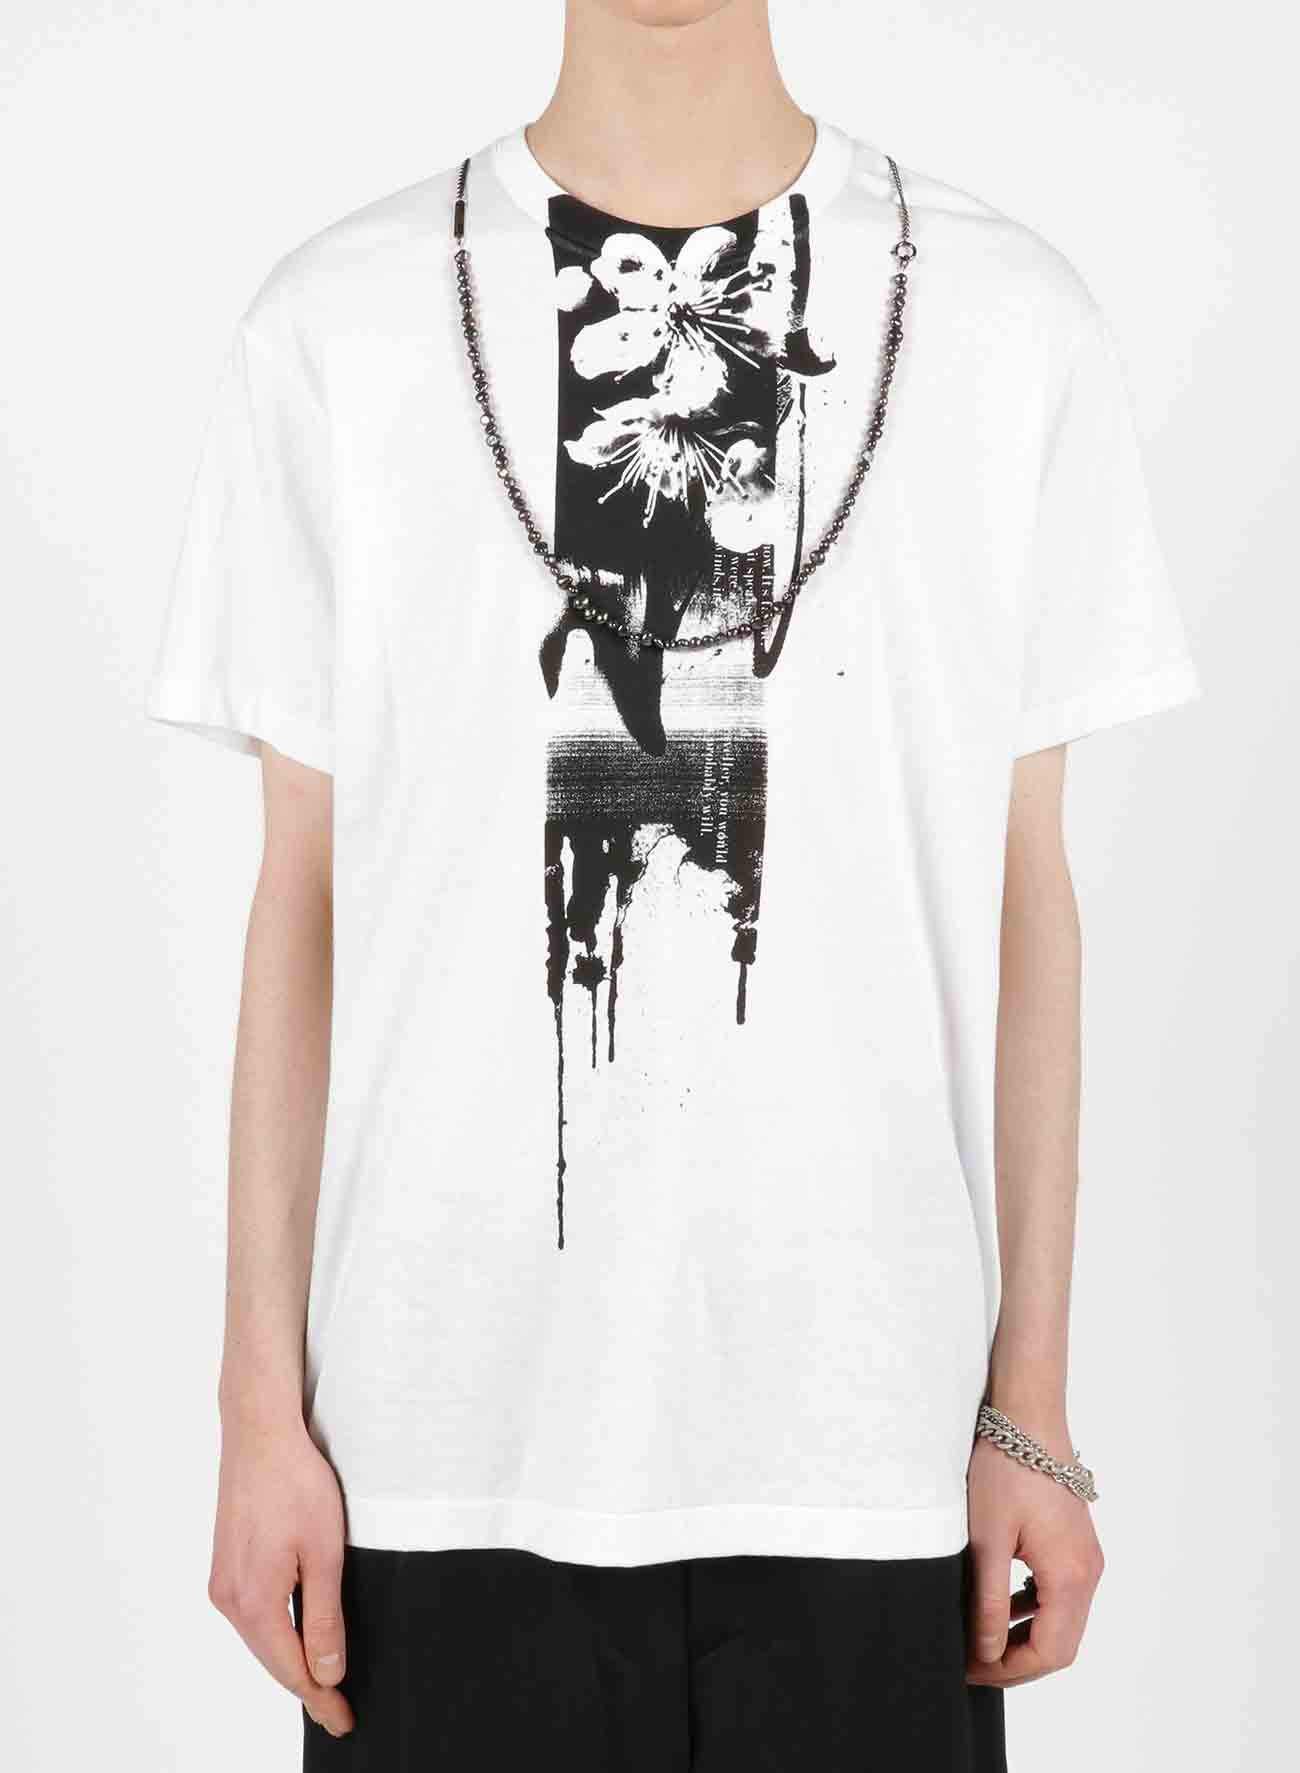 Plum blossom is the soul of Japan T-shirt